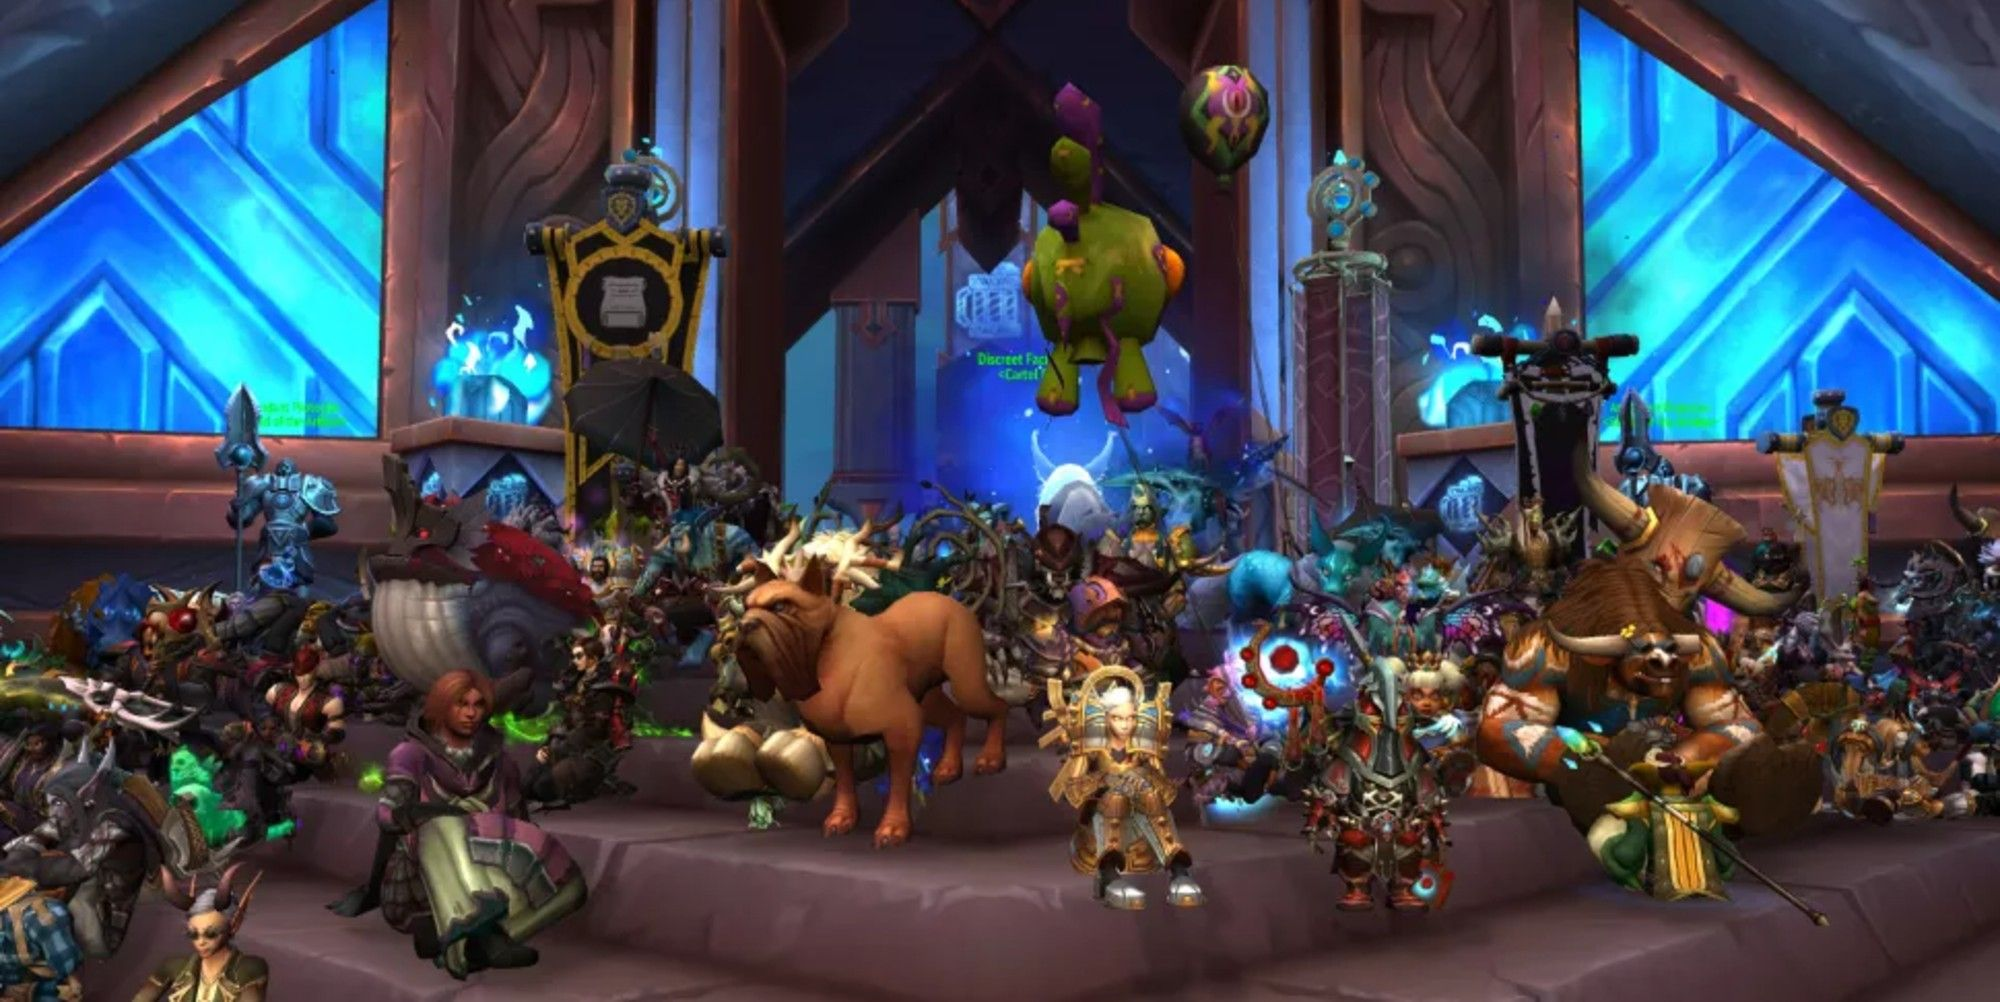 World Of Warcraft Players Protest Against Activision Blizzard In-Game